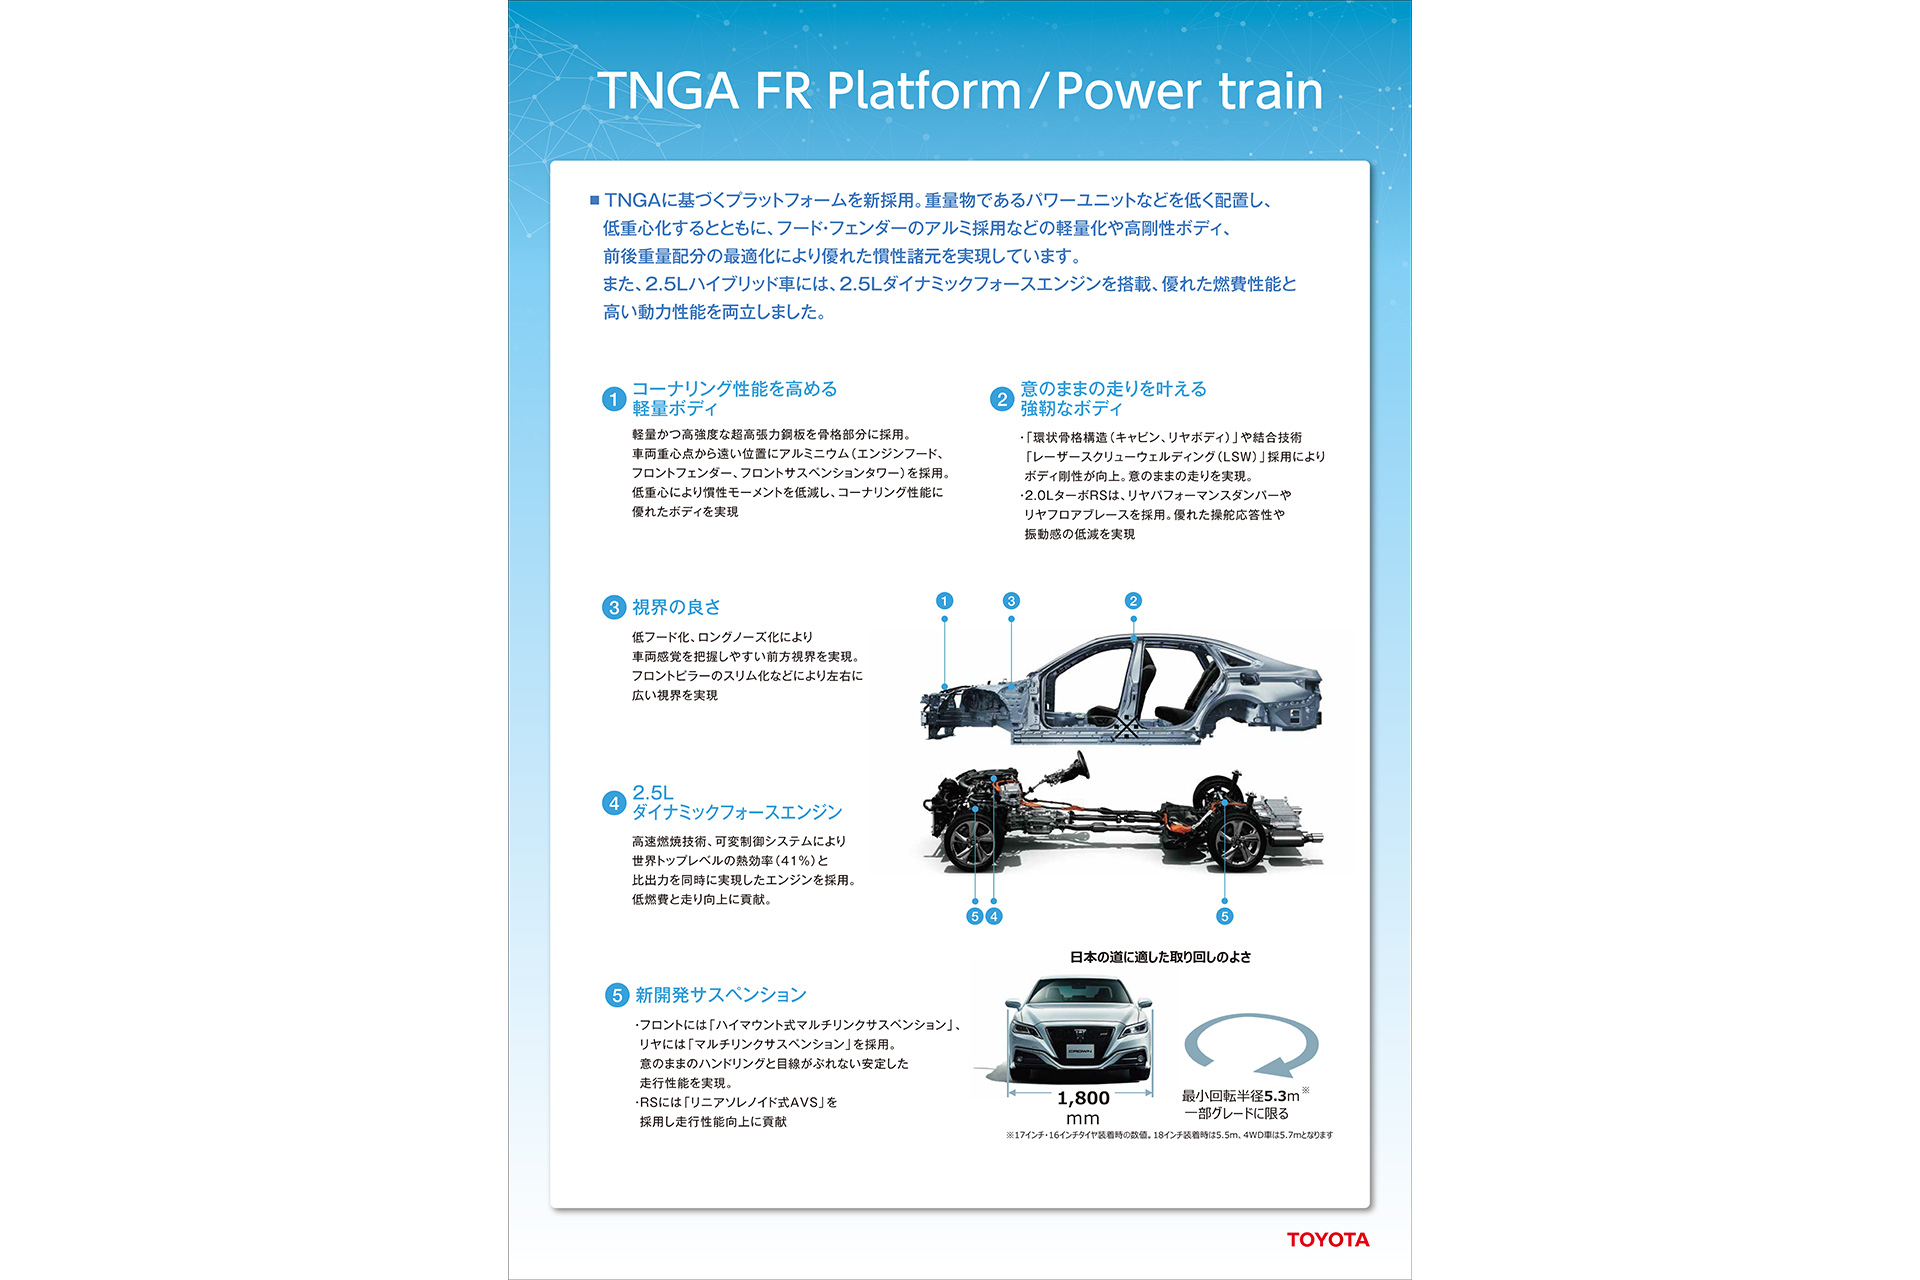 TNGA FR Platform / Power train